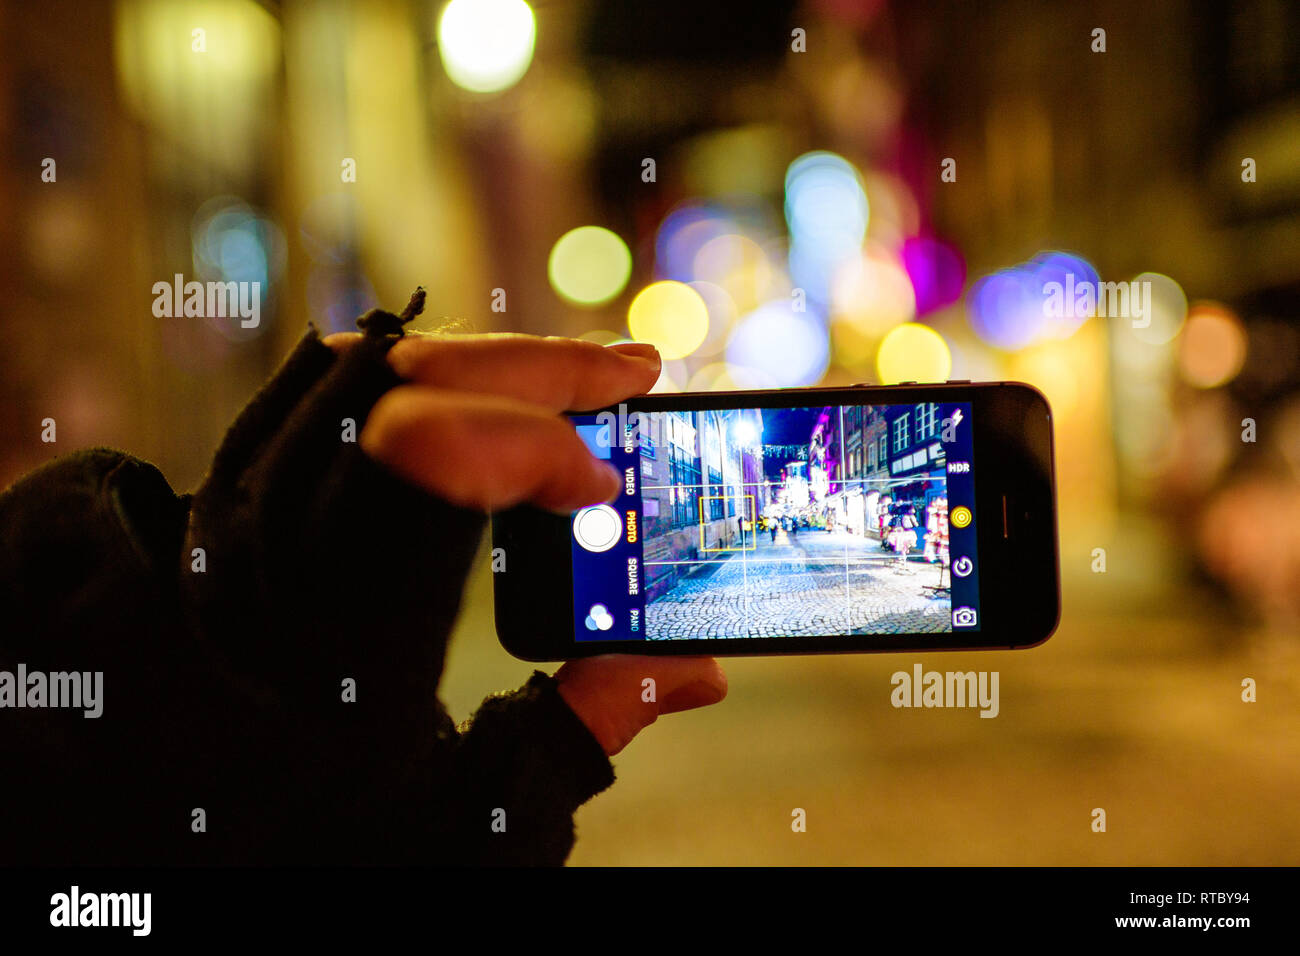 STRASBOURG, FRANCE - NOV 21, 2017: POV Tourist hand holding Apple iPhone smartphone in hand taking photographs of the Christmas Decorations of Christmas Market in Strasbourg - Stock Image